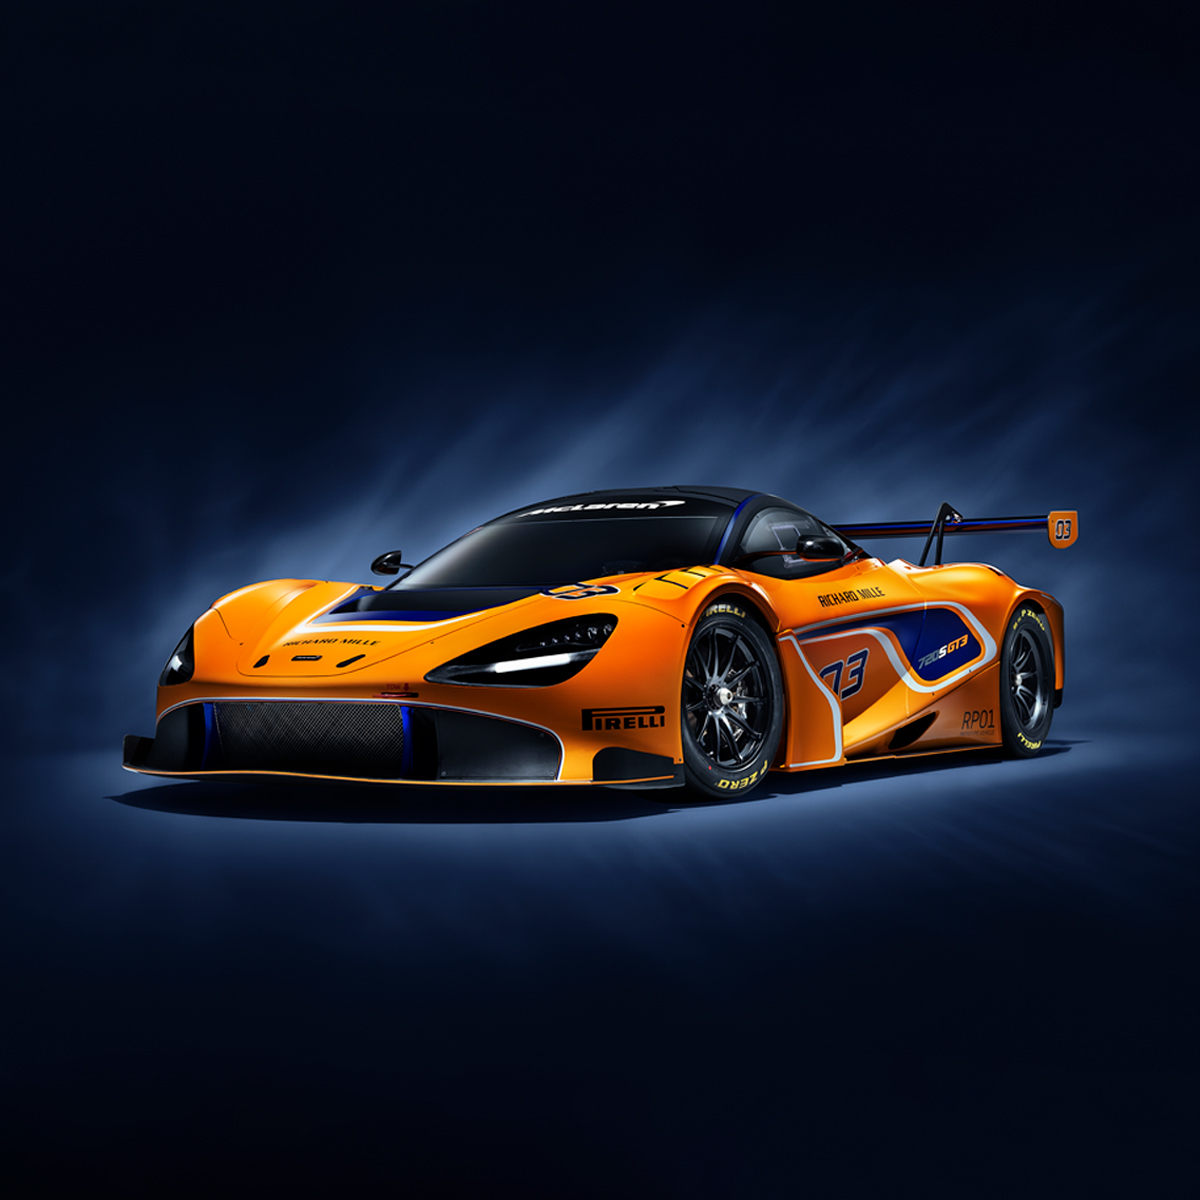 McLaren Customer Racing